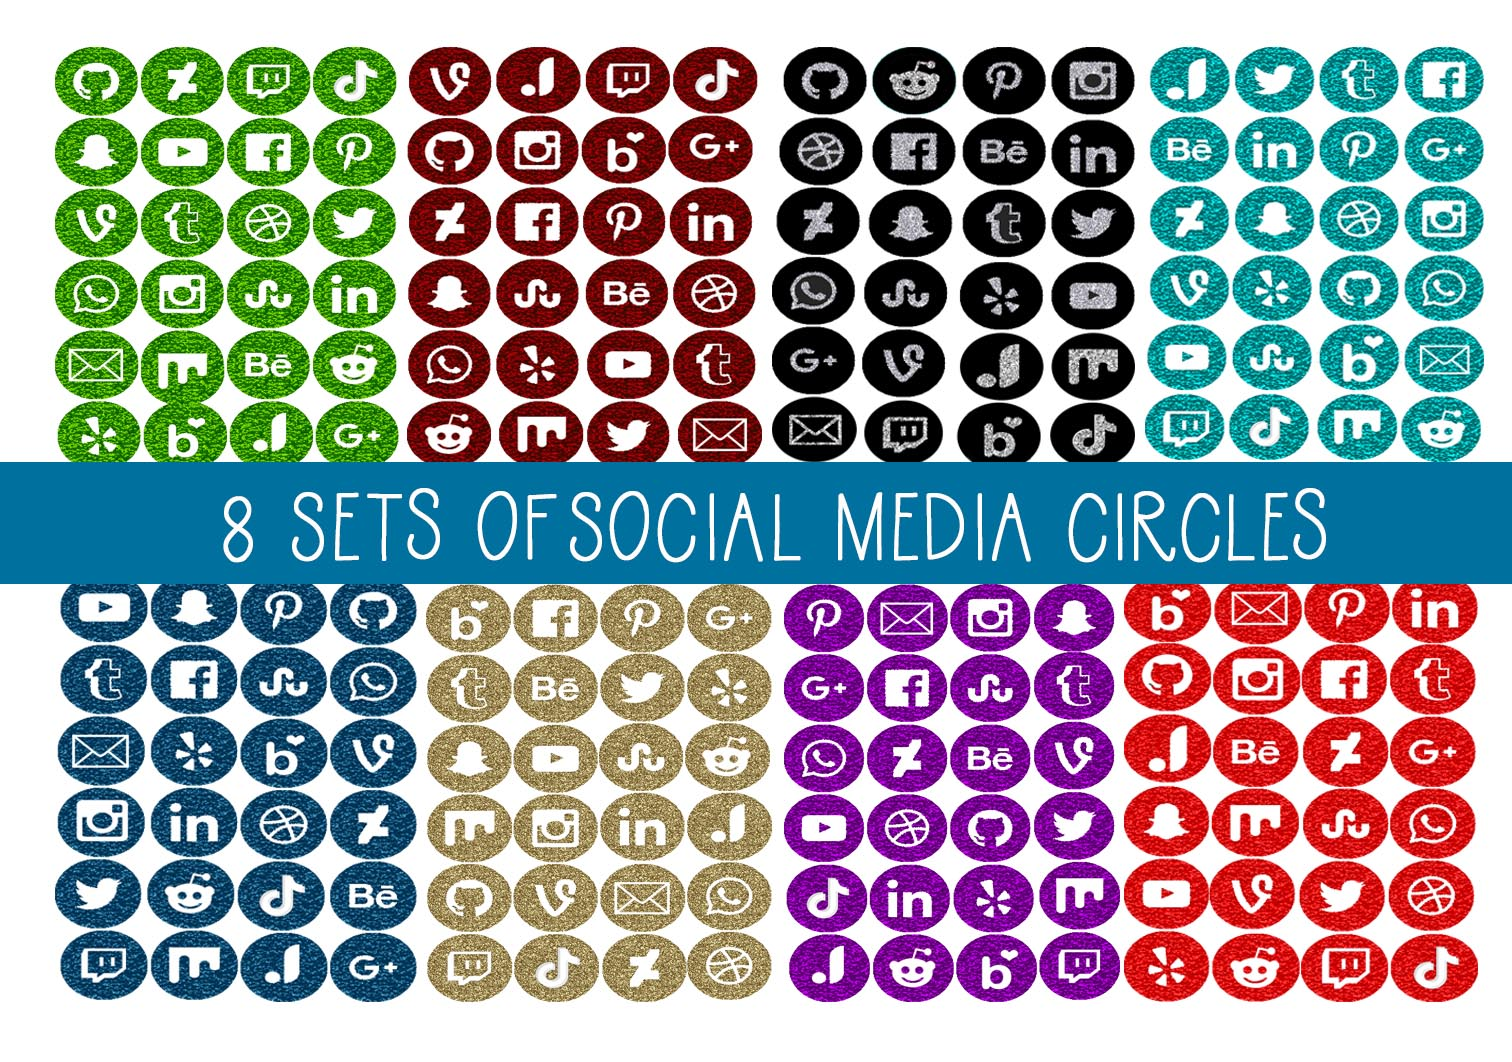 Download Free 8 Sets Circle Social Media Icons Set 1 Graphic By Capeairforce for Cricut Explore, Silhouette and other cutting machines.